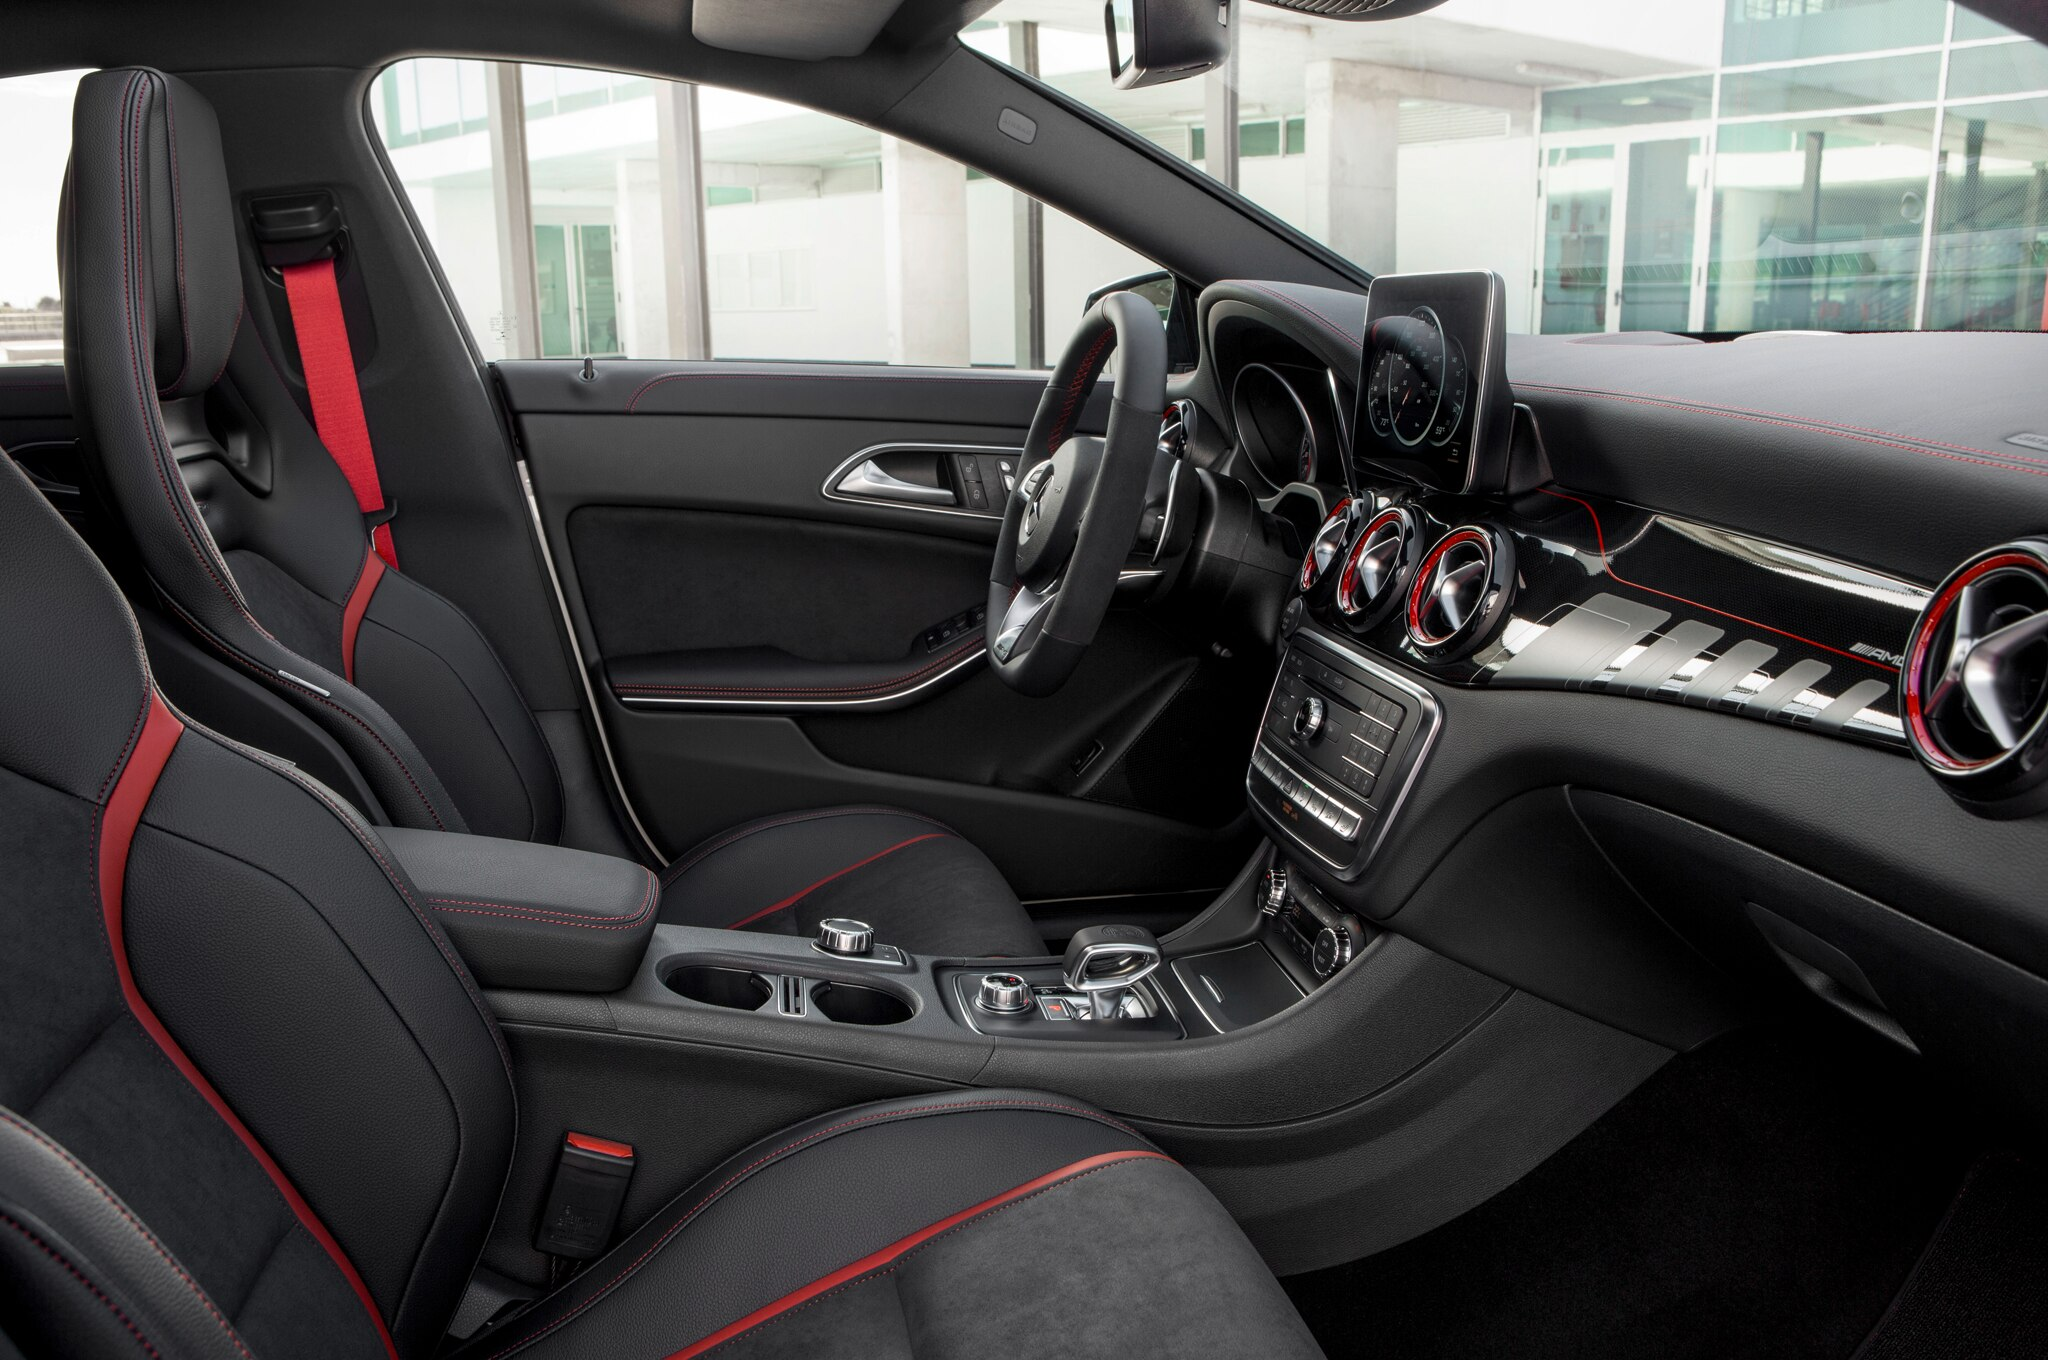 Mercedes Cla 45 Amg For Sale >> 2017 Mercedes-Benz CLA250, CLA45 Refreshed in New York   Automobile Magazine